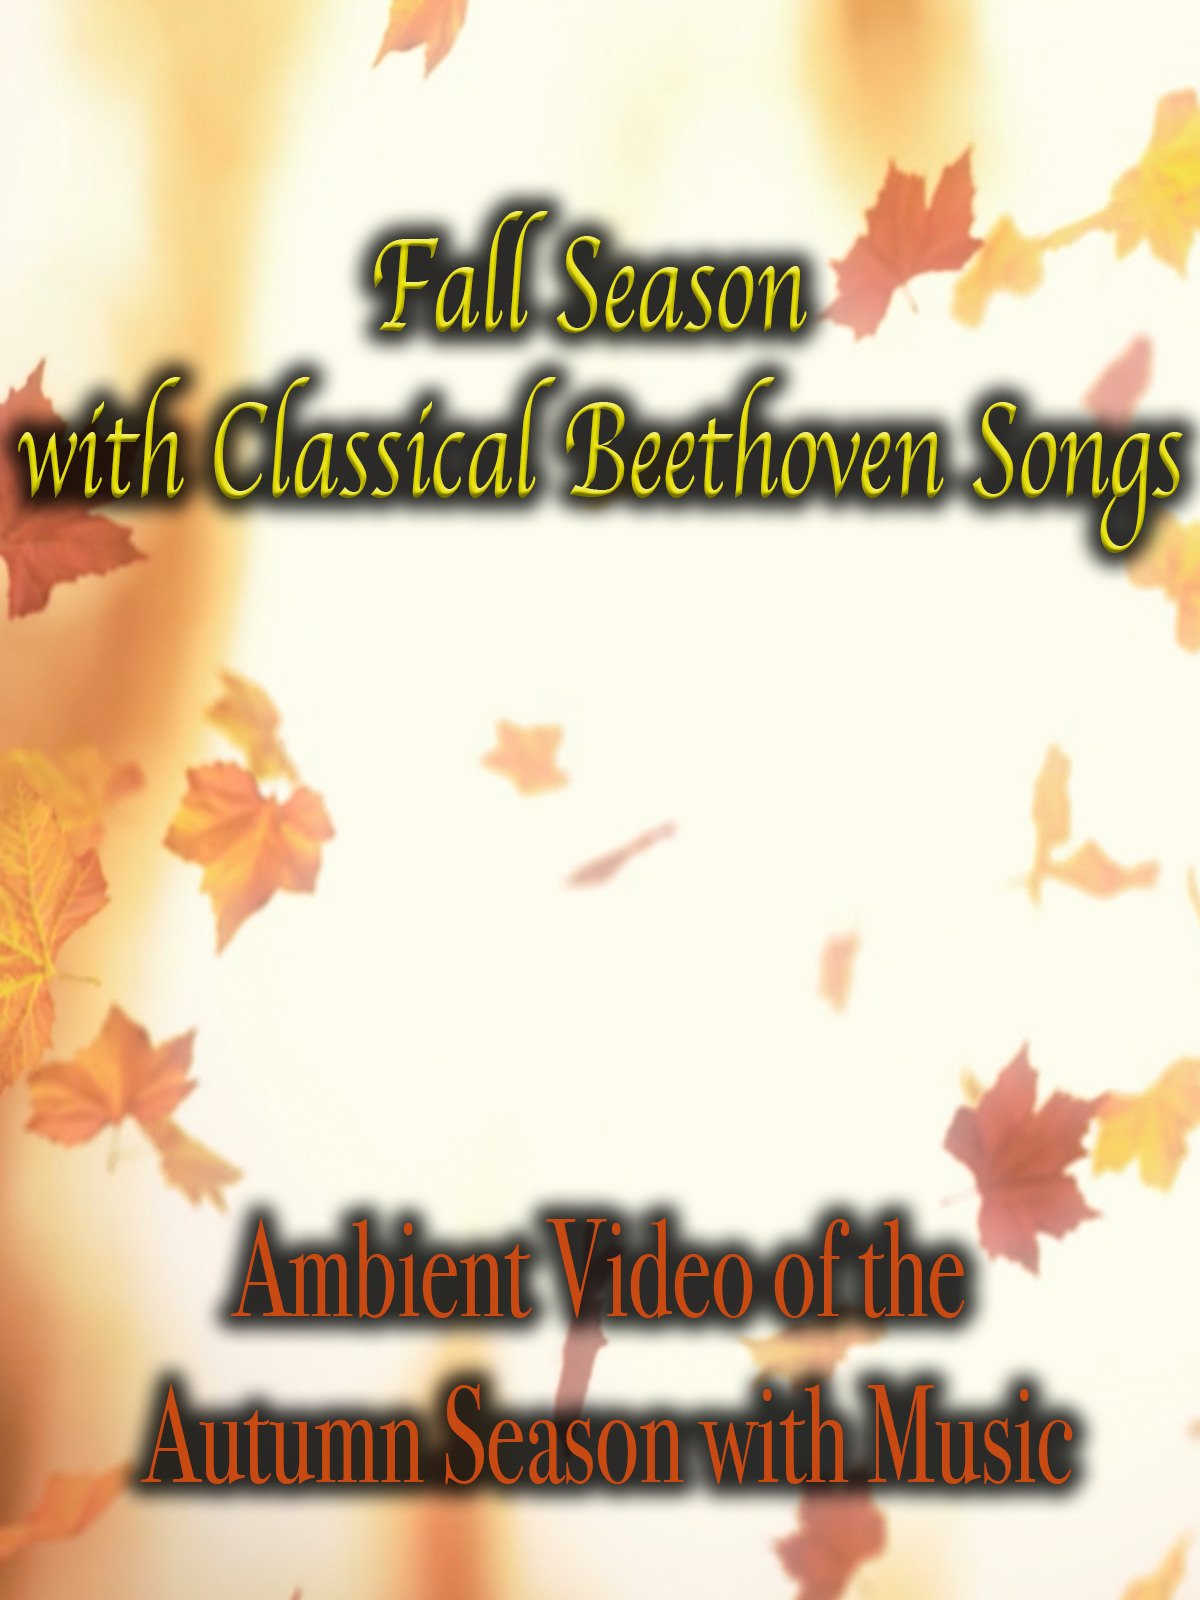 Fall Season with Classical Beethoven Songs Ambient Video of the Autumn Season with Music